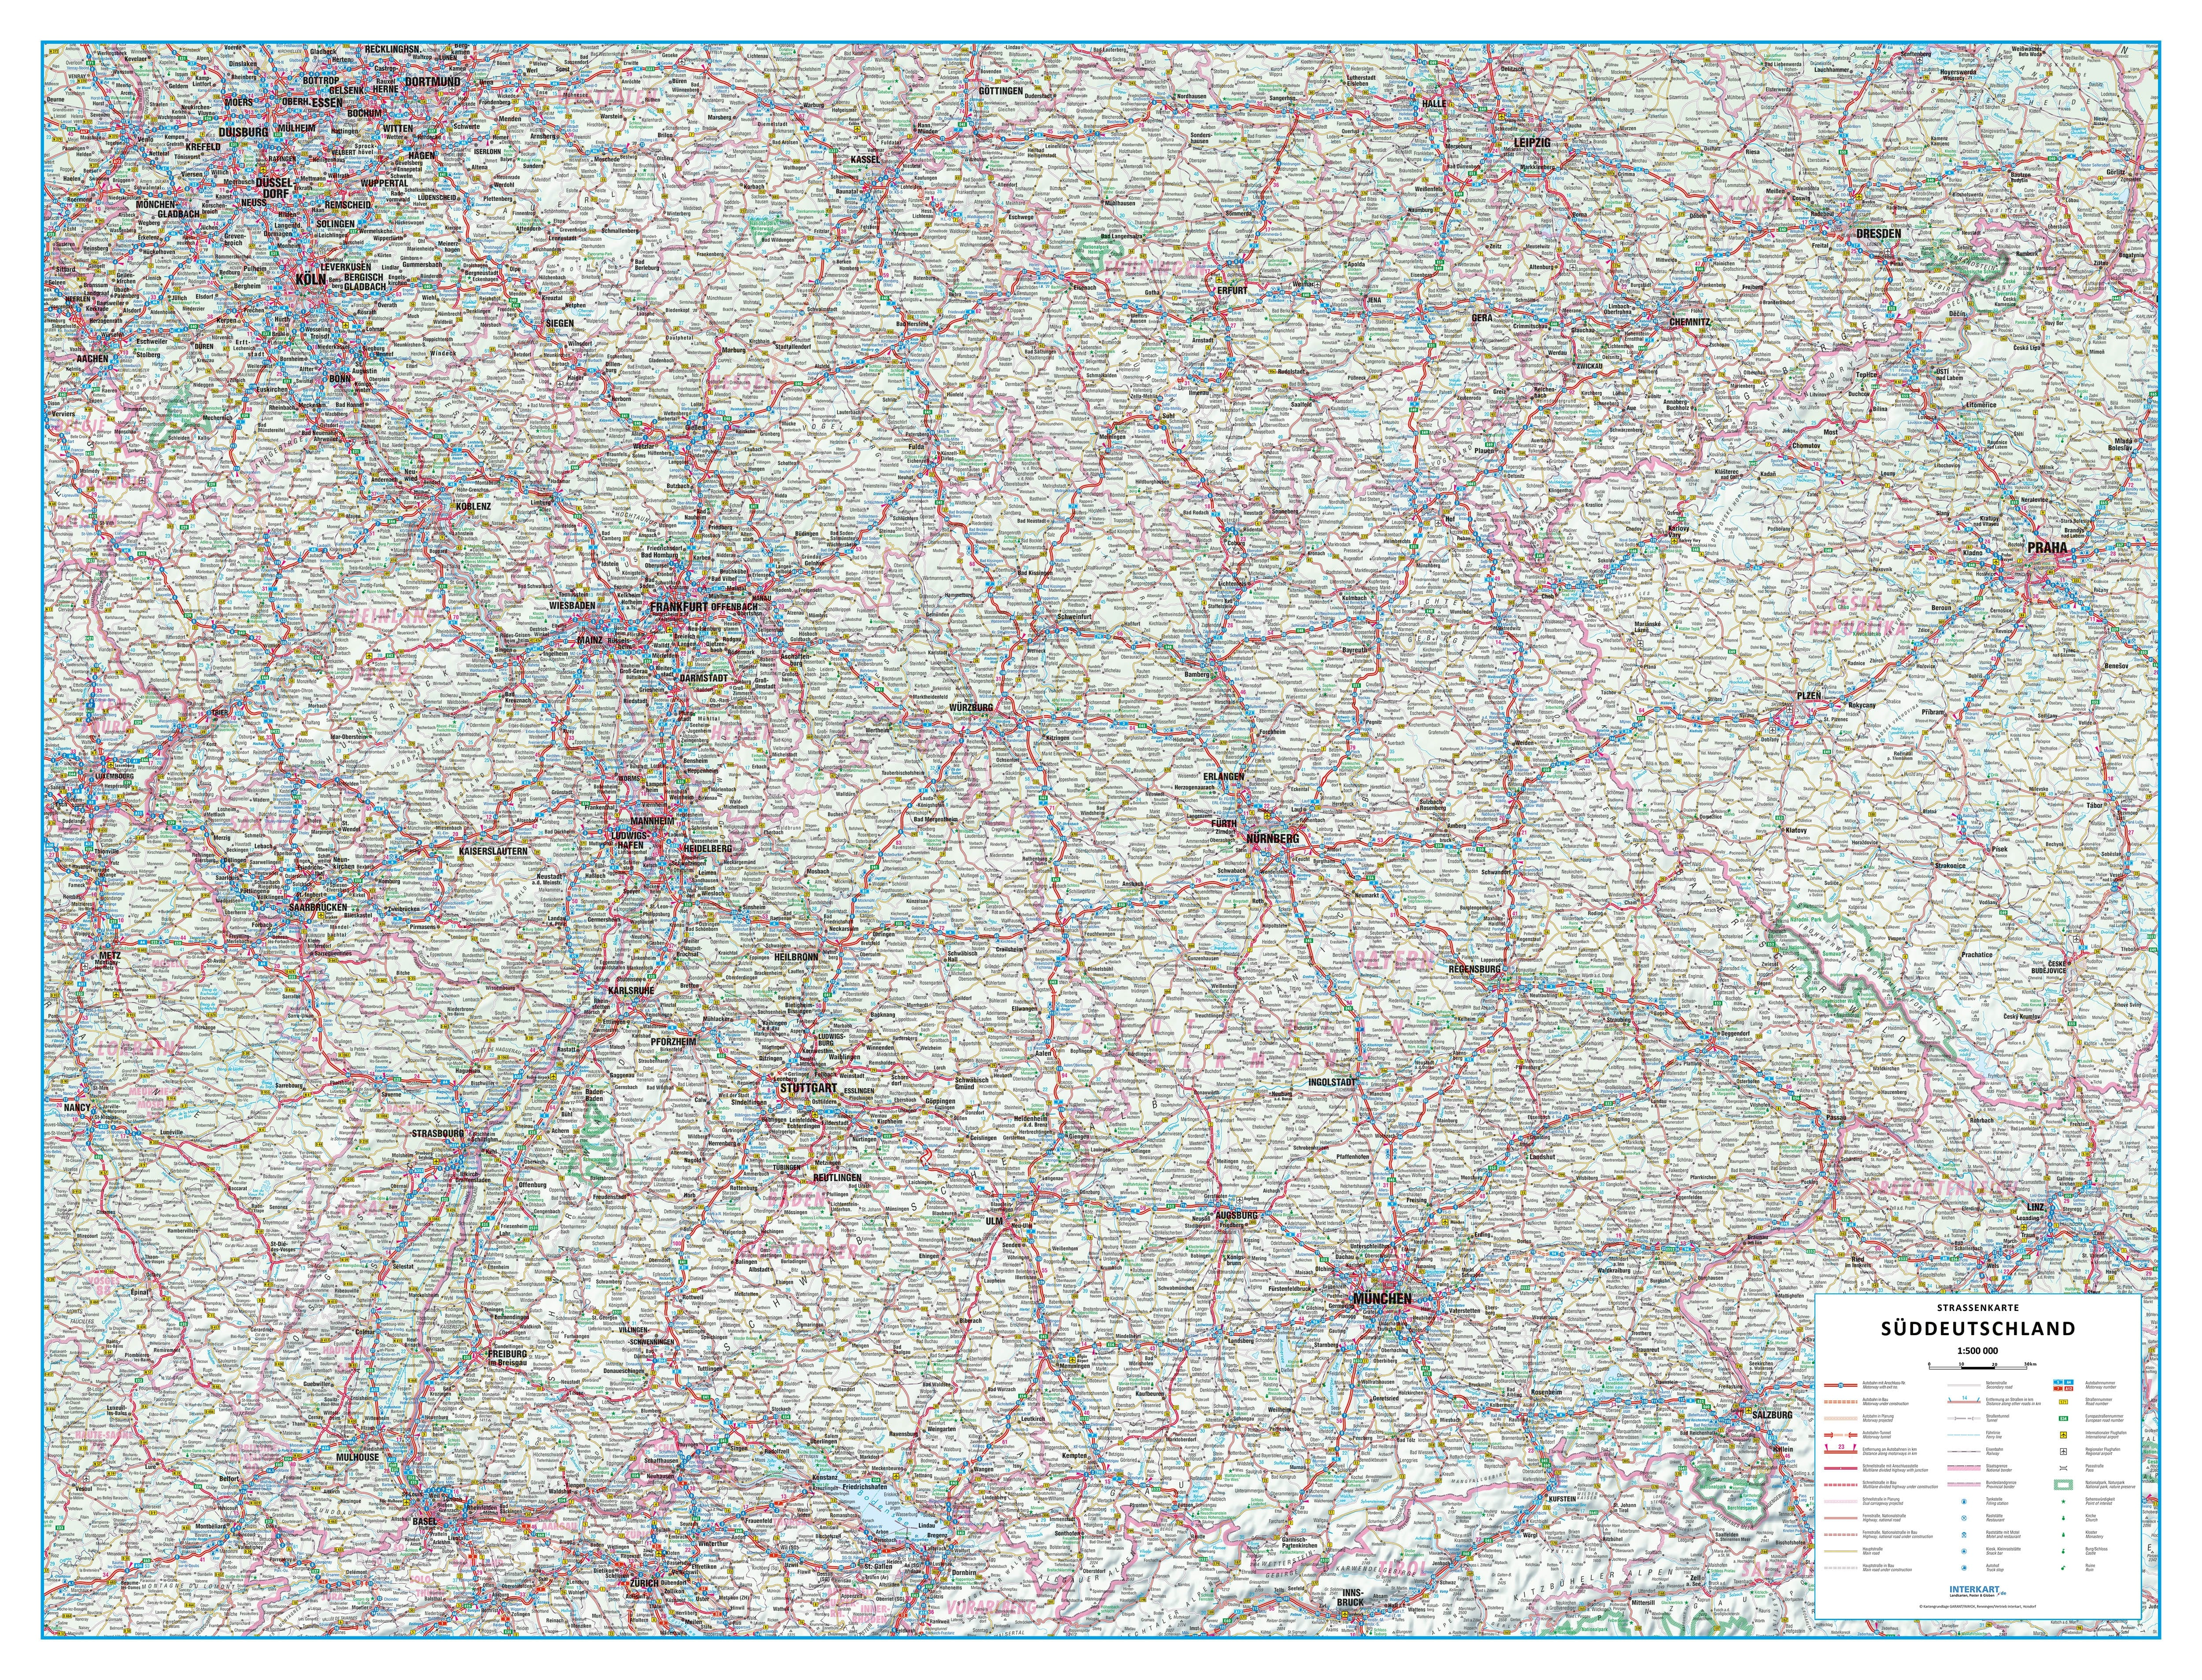 Road Map South Germany 135 x 103cm - Germany Wall Maps - Europe ...